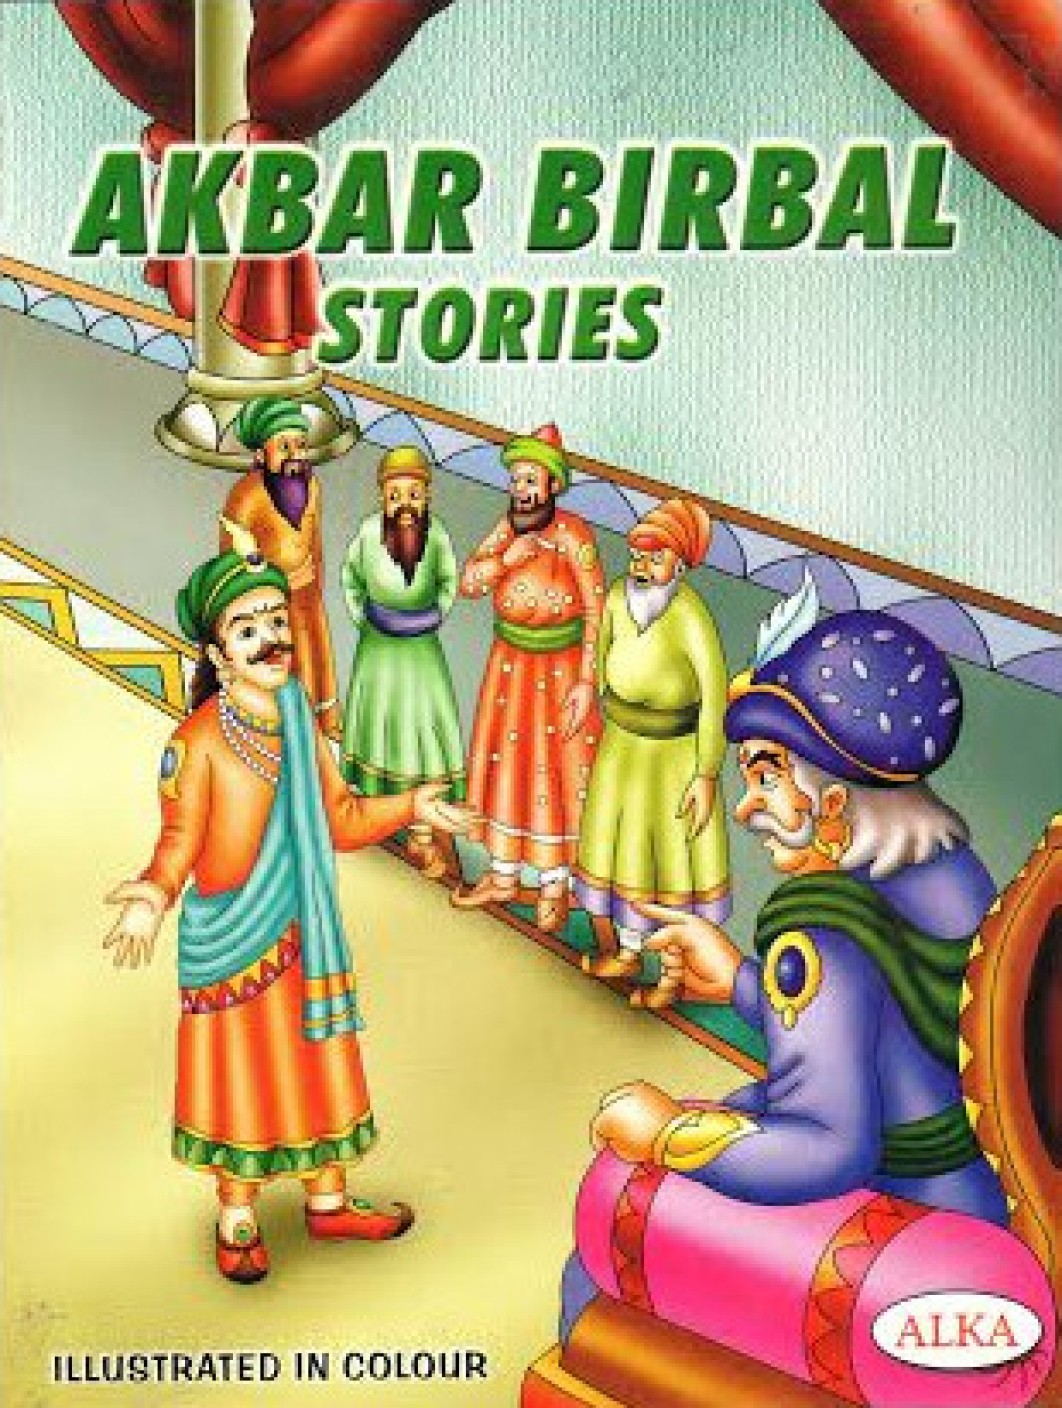 Akbar Birbal Stories - Buy Akbar Birbal Stories by ,, Online at ...